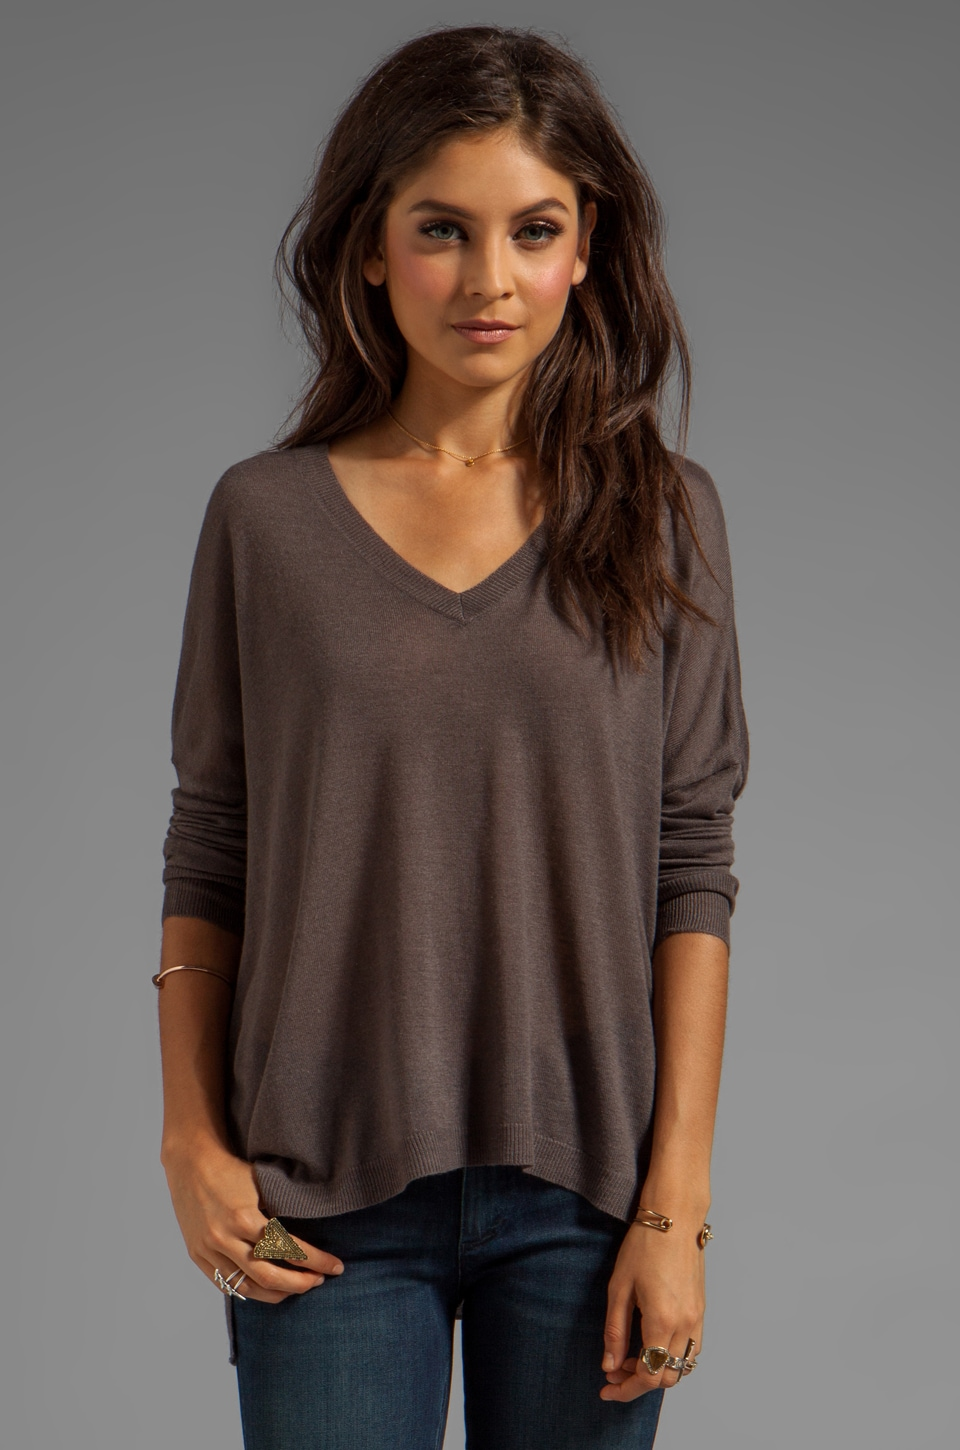 Line The Insinuator Sweater in Rare Earth